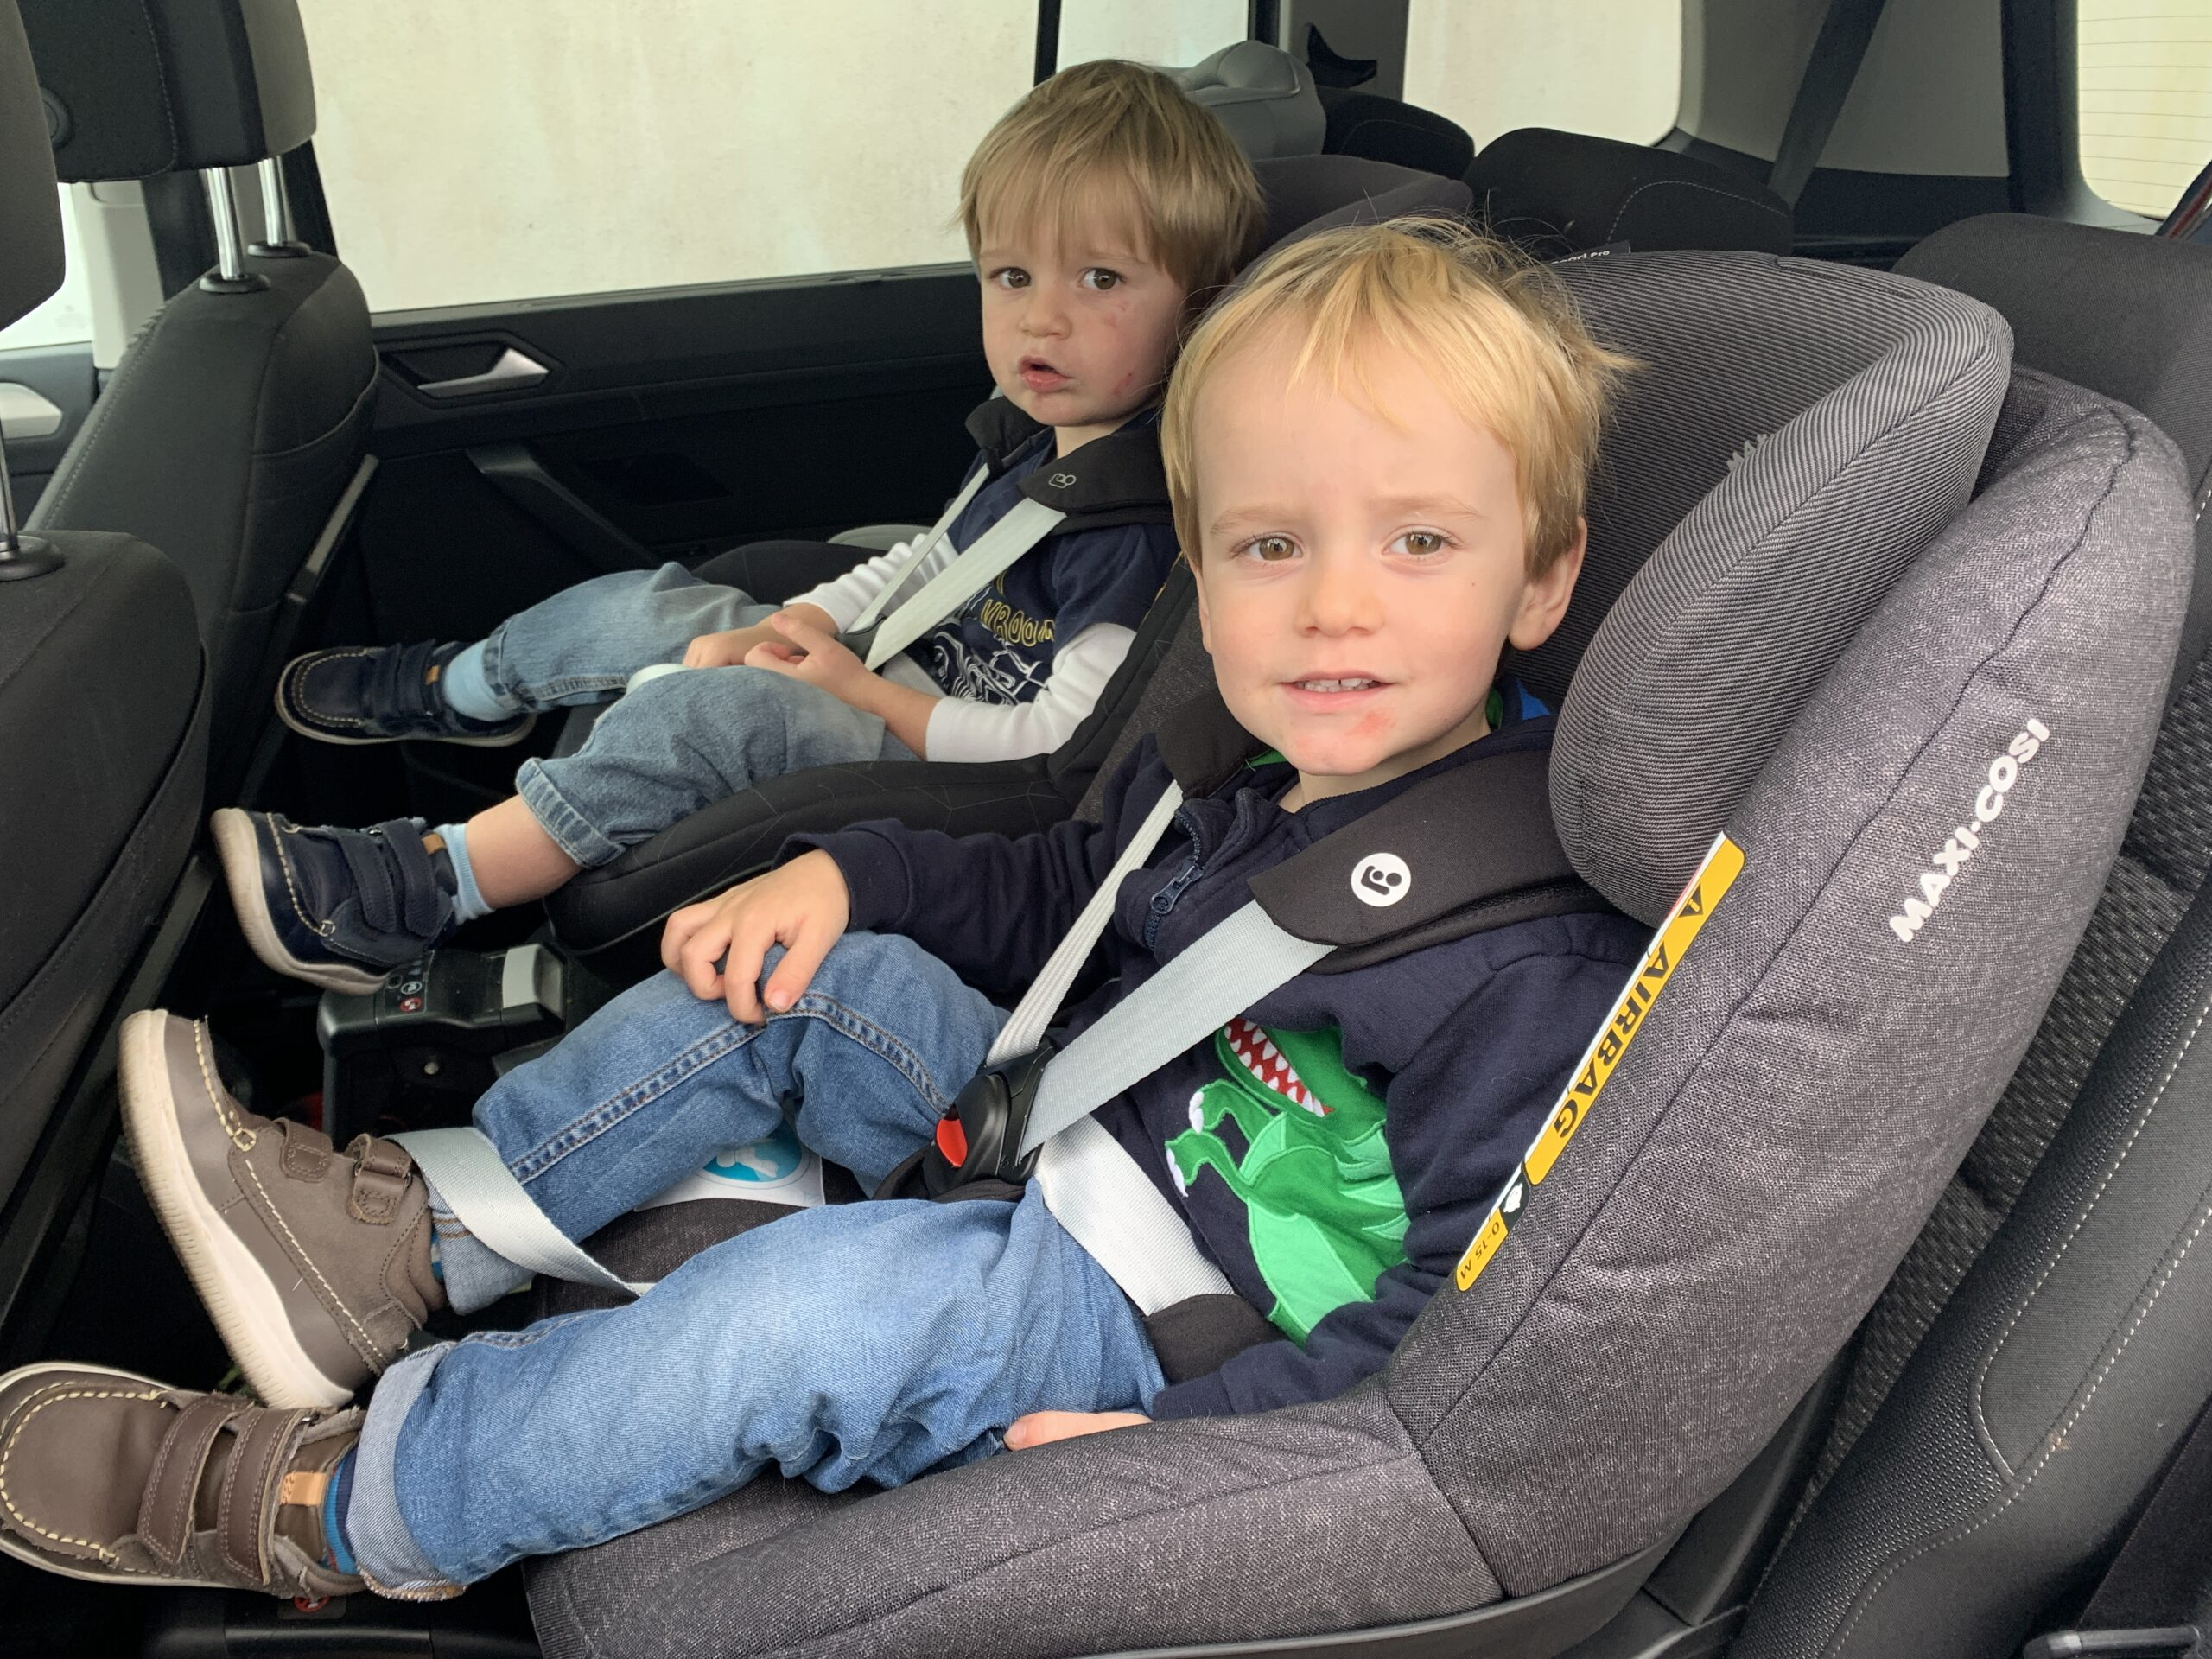 Product Review - Maxi Cosi Pearl Pro i-Size car seat